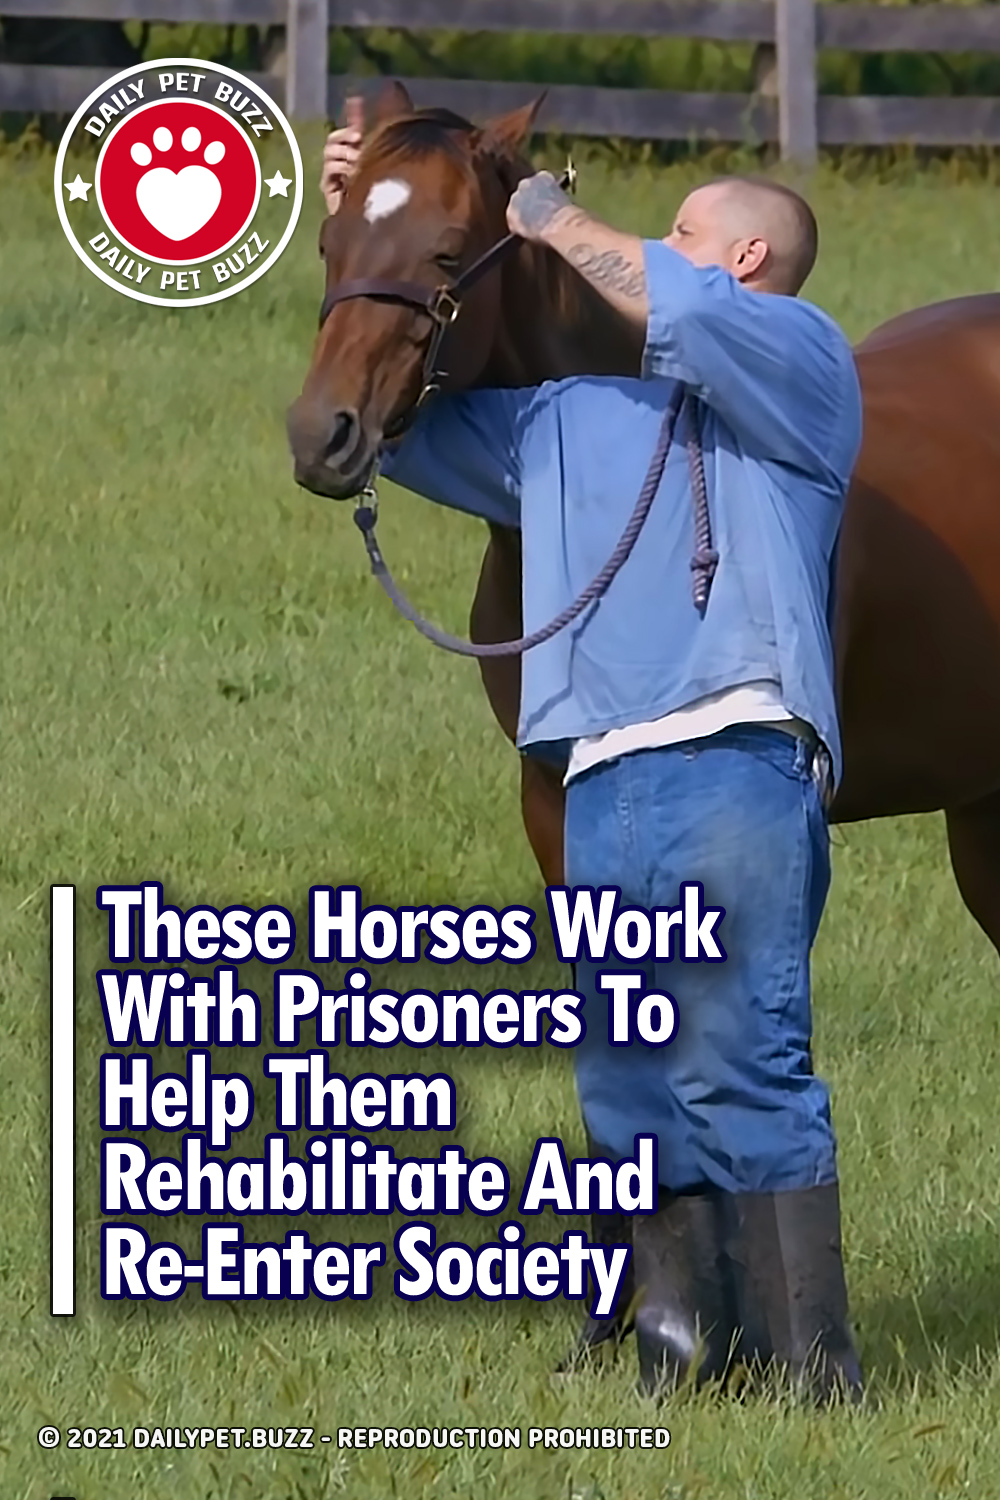 These Horses Work With Prisoners To Help Them Rehabilitate And Re-Enter Society